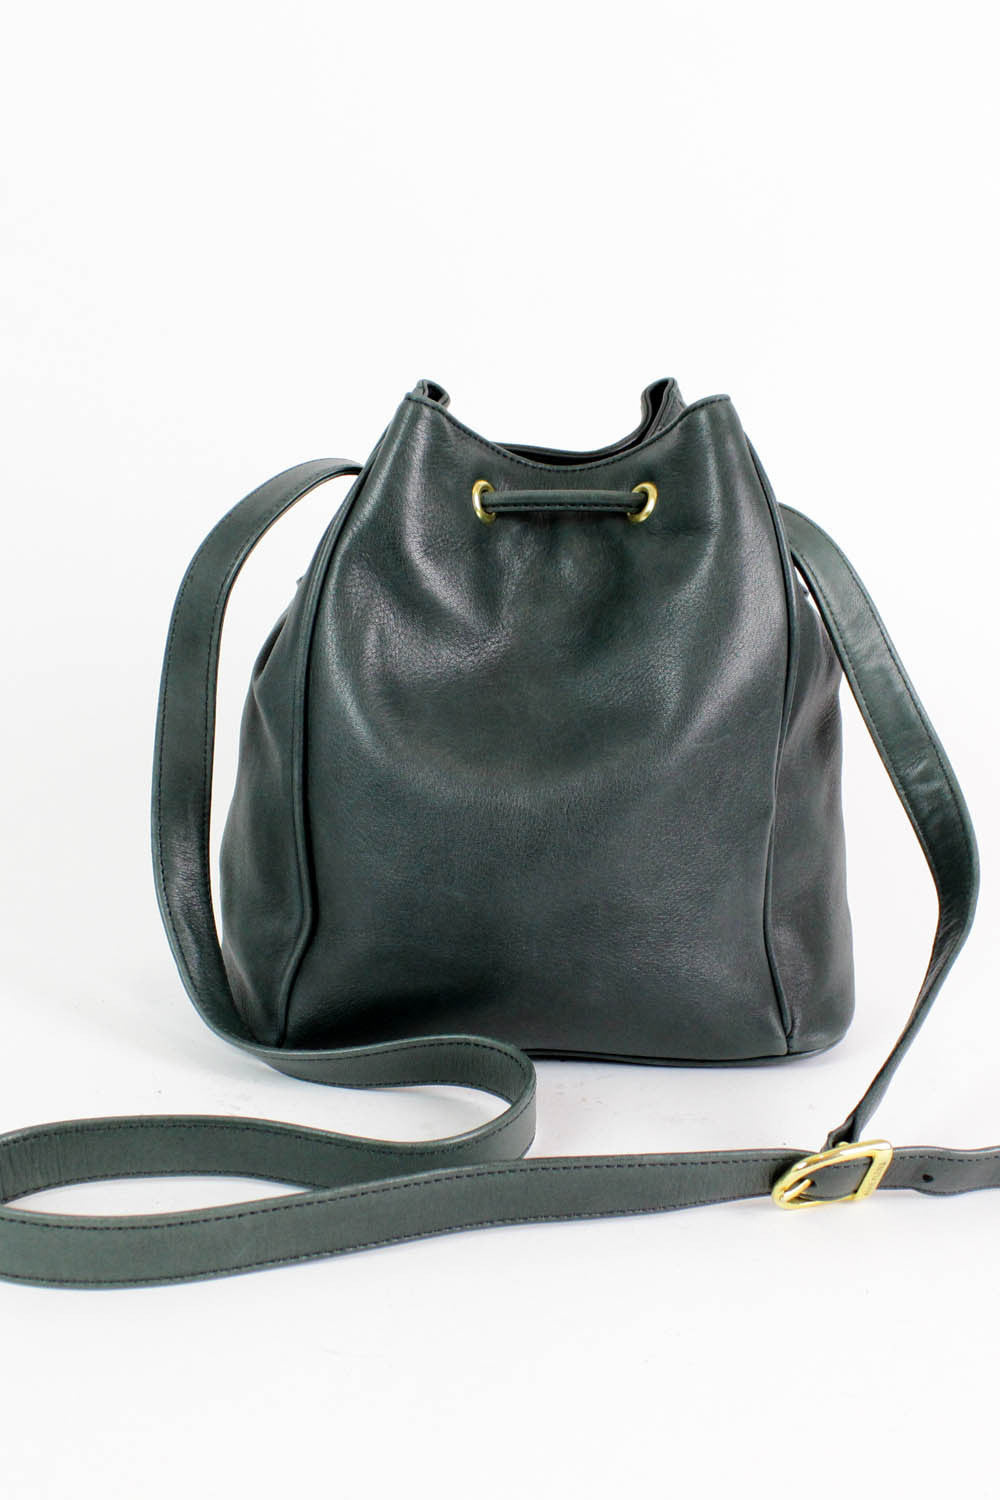 teal leather bucket bag